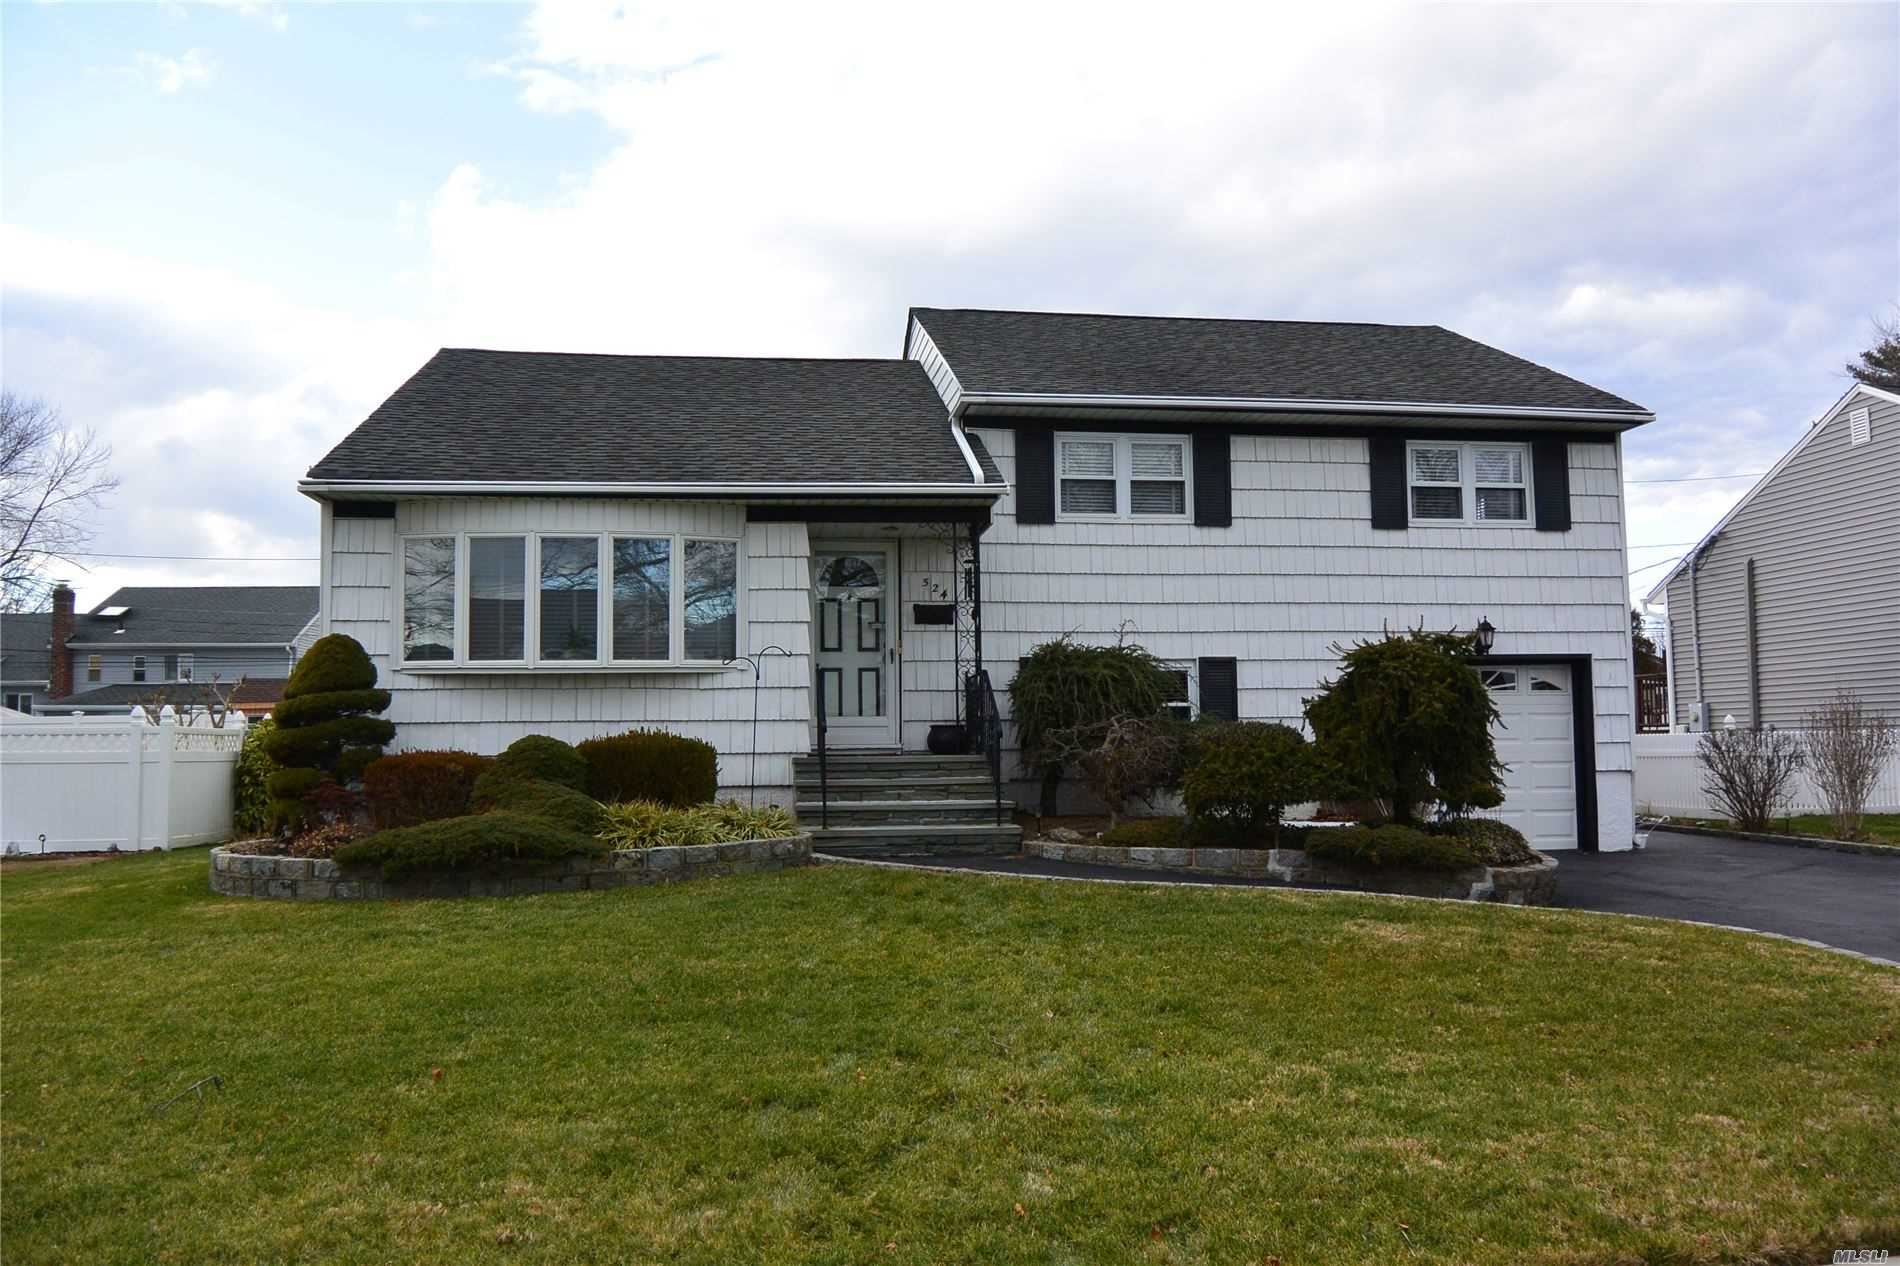 524 Charles, Wantagh, NY 11793 - MLS#: 3193565